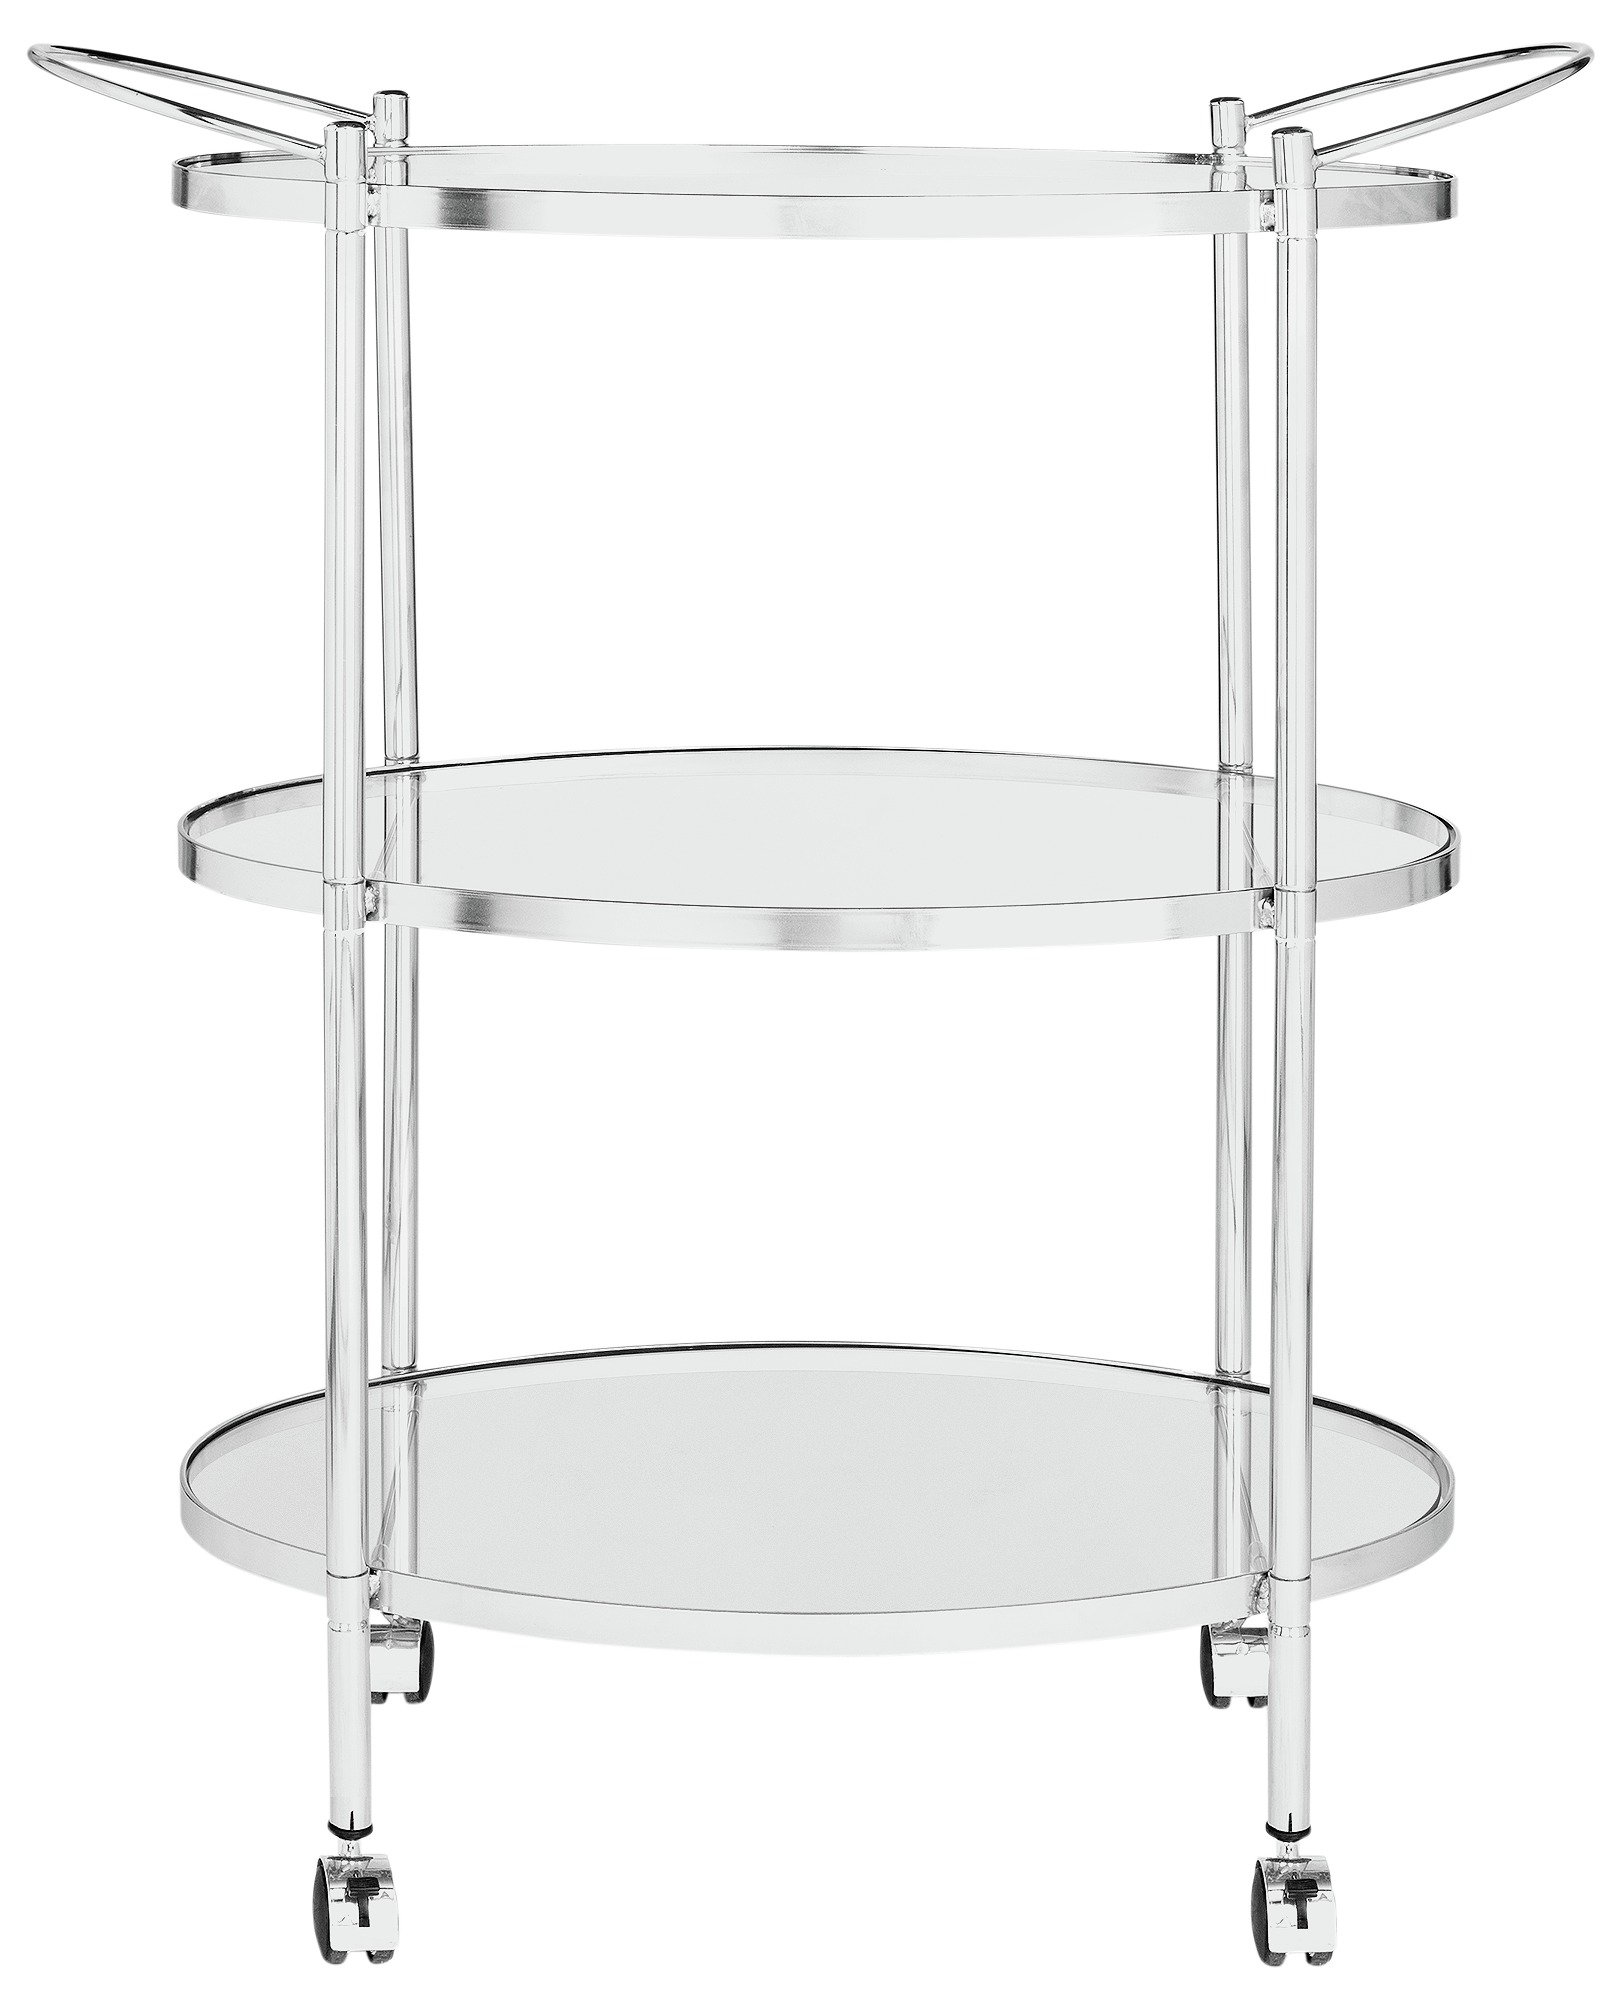 Heart of House 3 Tier Chrome and Glass Drinks Trolley.